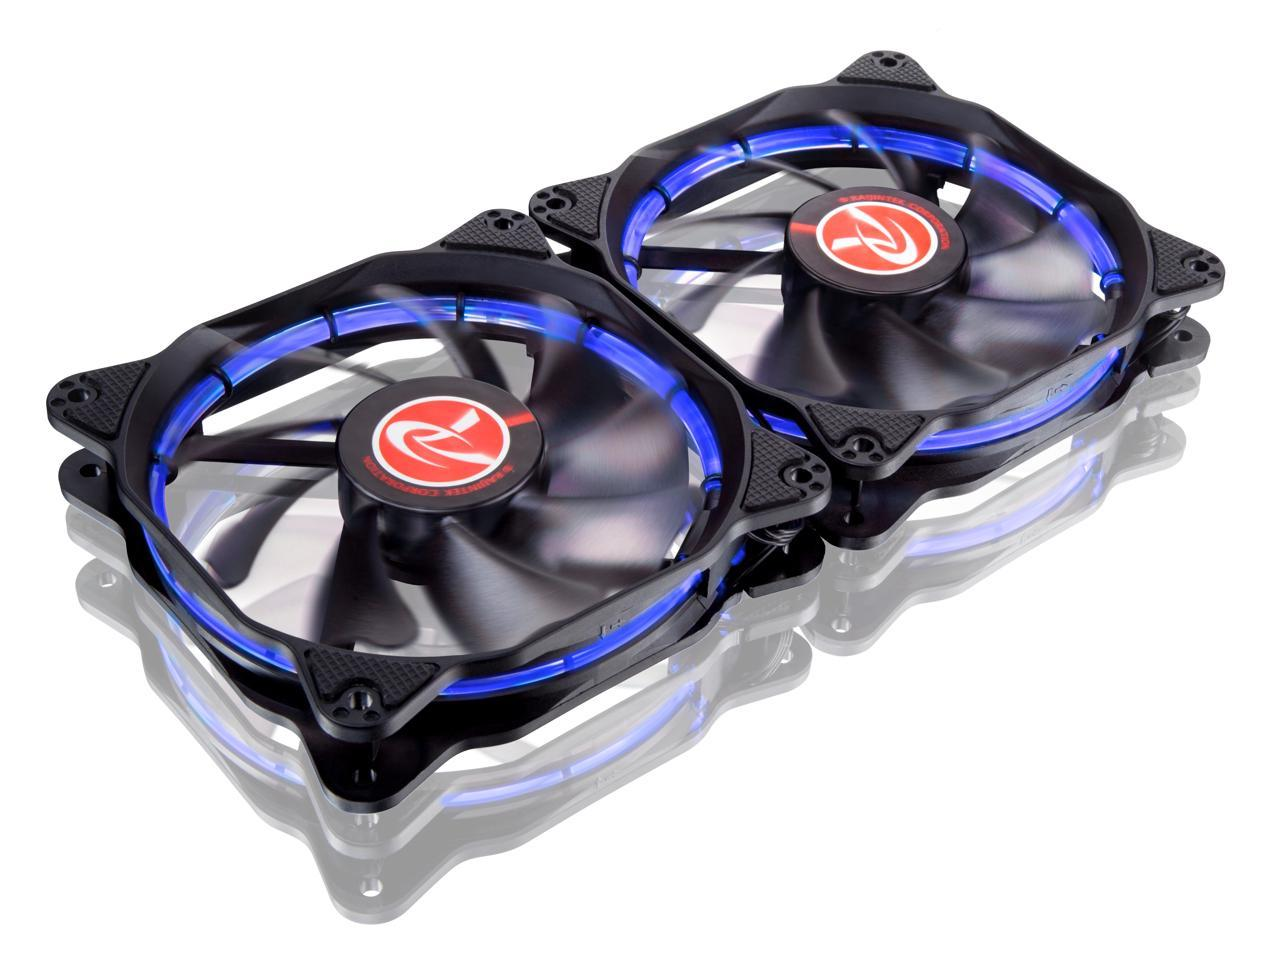 RAIJINTEK AURAS 12 BLUE - 2pcs, A 12025 O-type LED PWM Fan & Anti-Vibration Rubber at 4 Corner, Brings Visible Color and Brightness Uniformity From All Directions and Adds Spot Light to Cases & Cooler